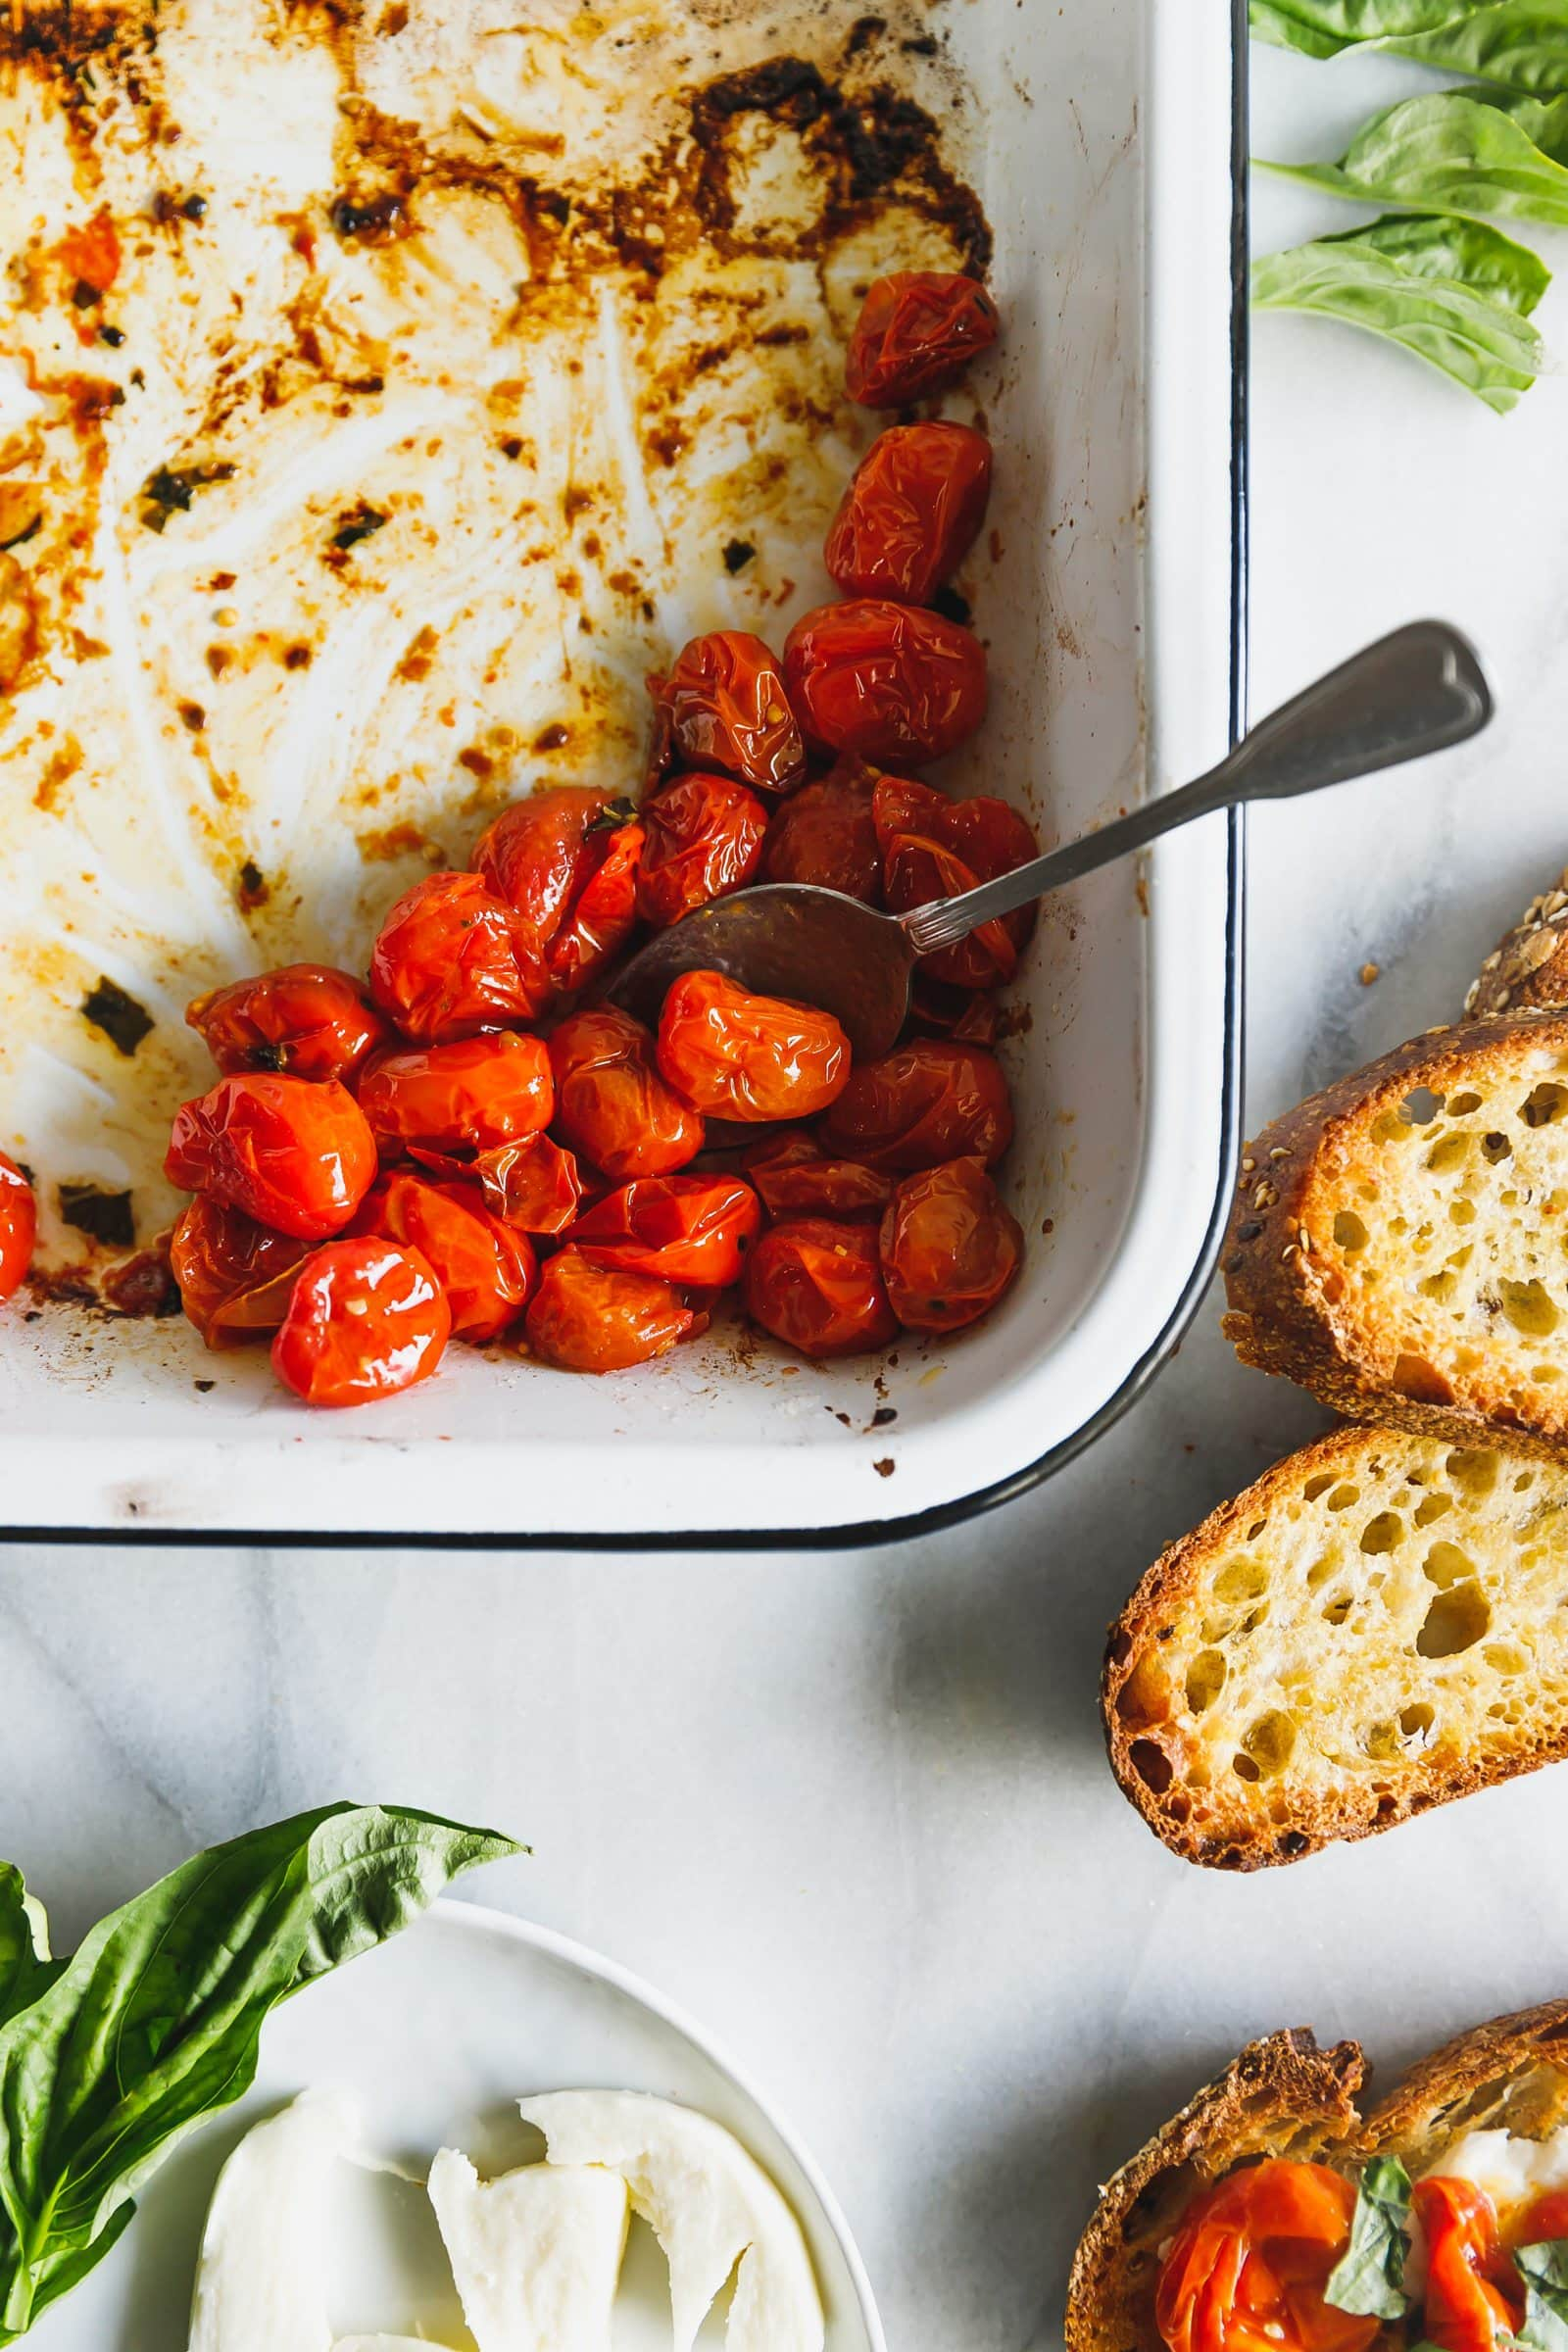 Caprese salad on toast! Cherry tomatoes are roasted until bursting and lightly browned then served with fresh mozzarella on thick, olive-oil-toasted bread.